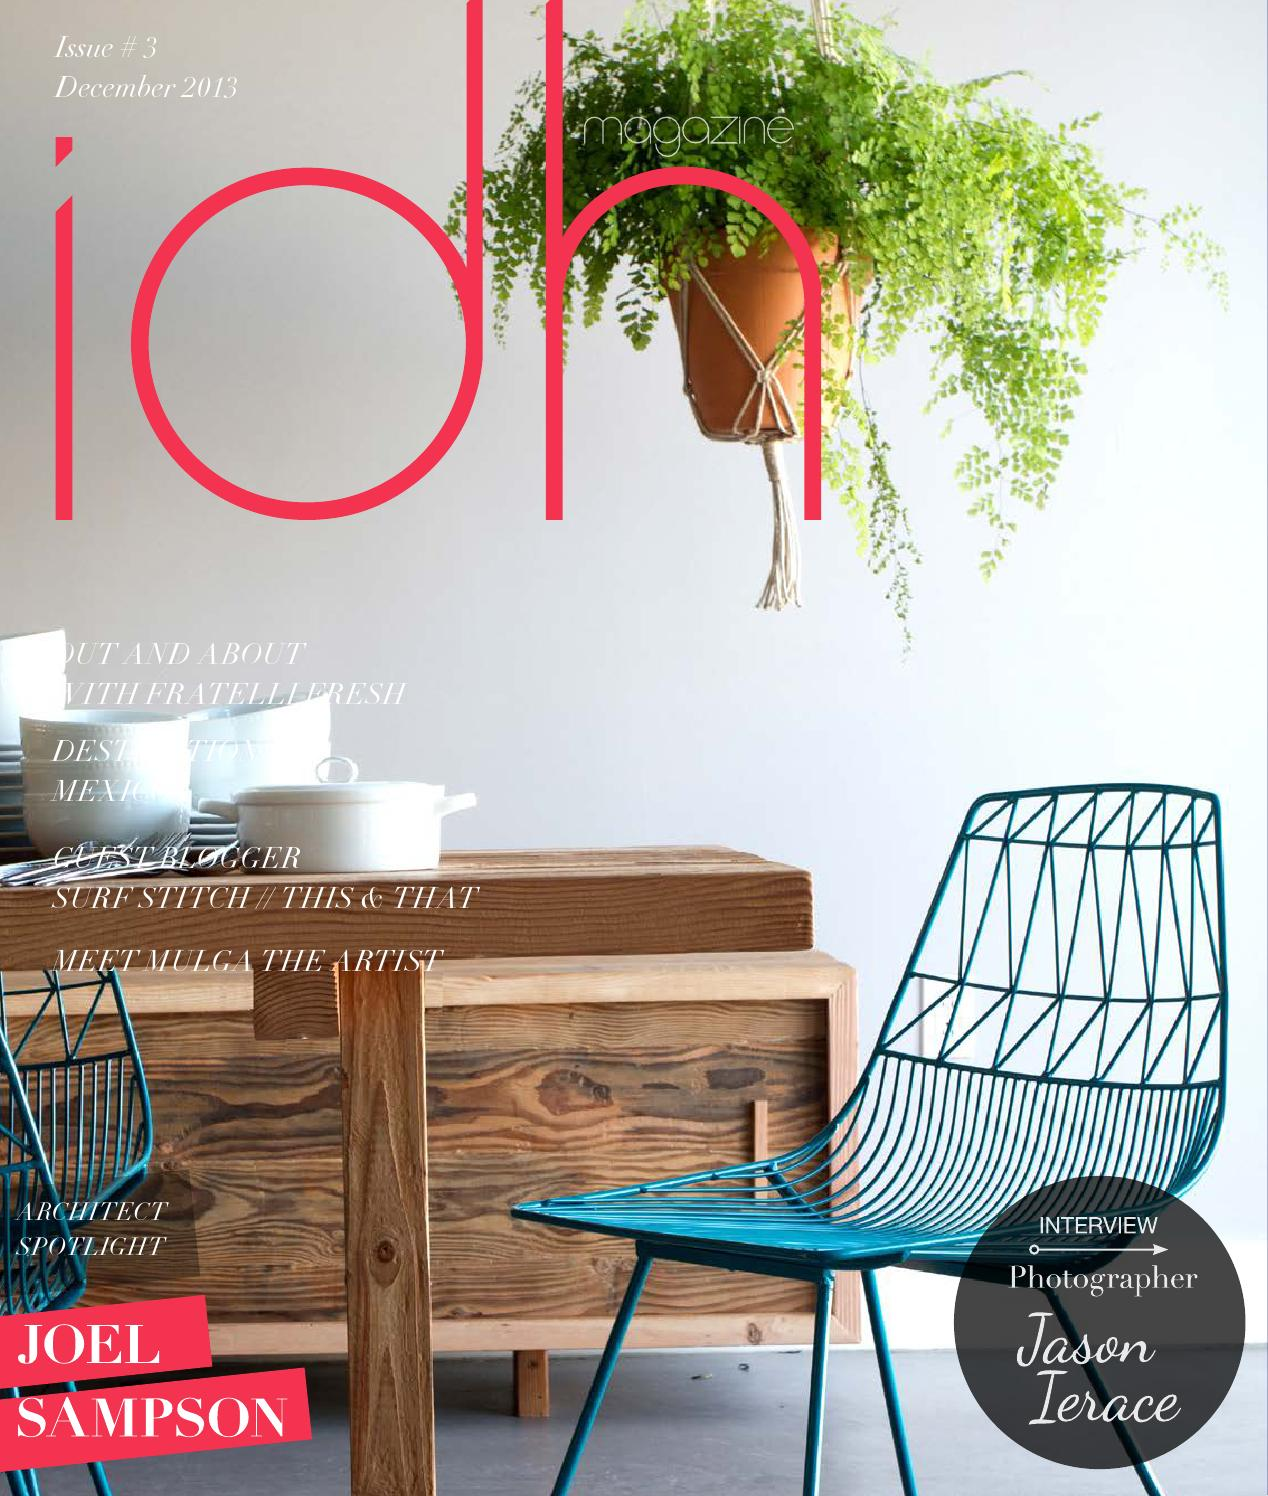 Idh magazine issue 3 by In A Designer Home - issuu